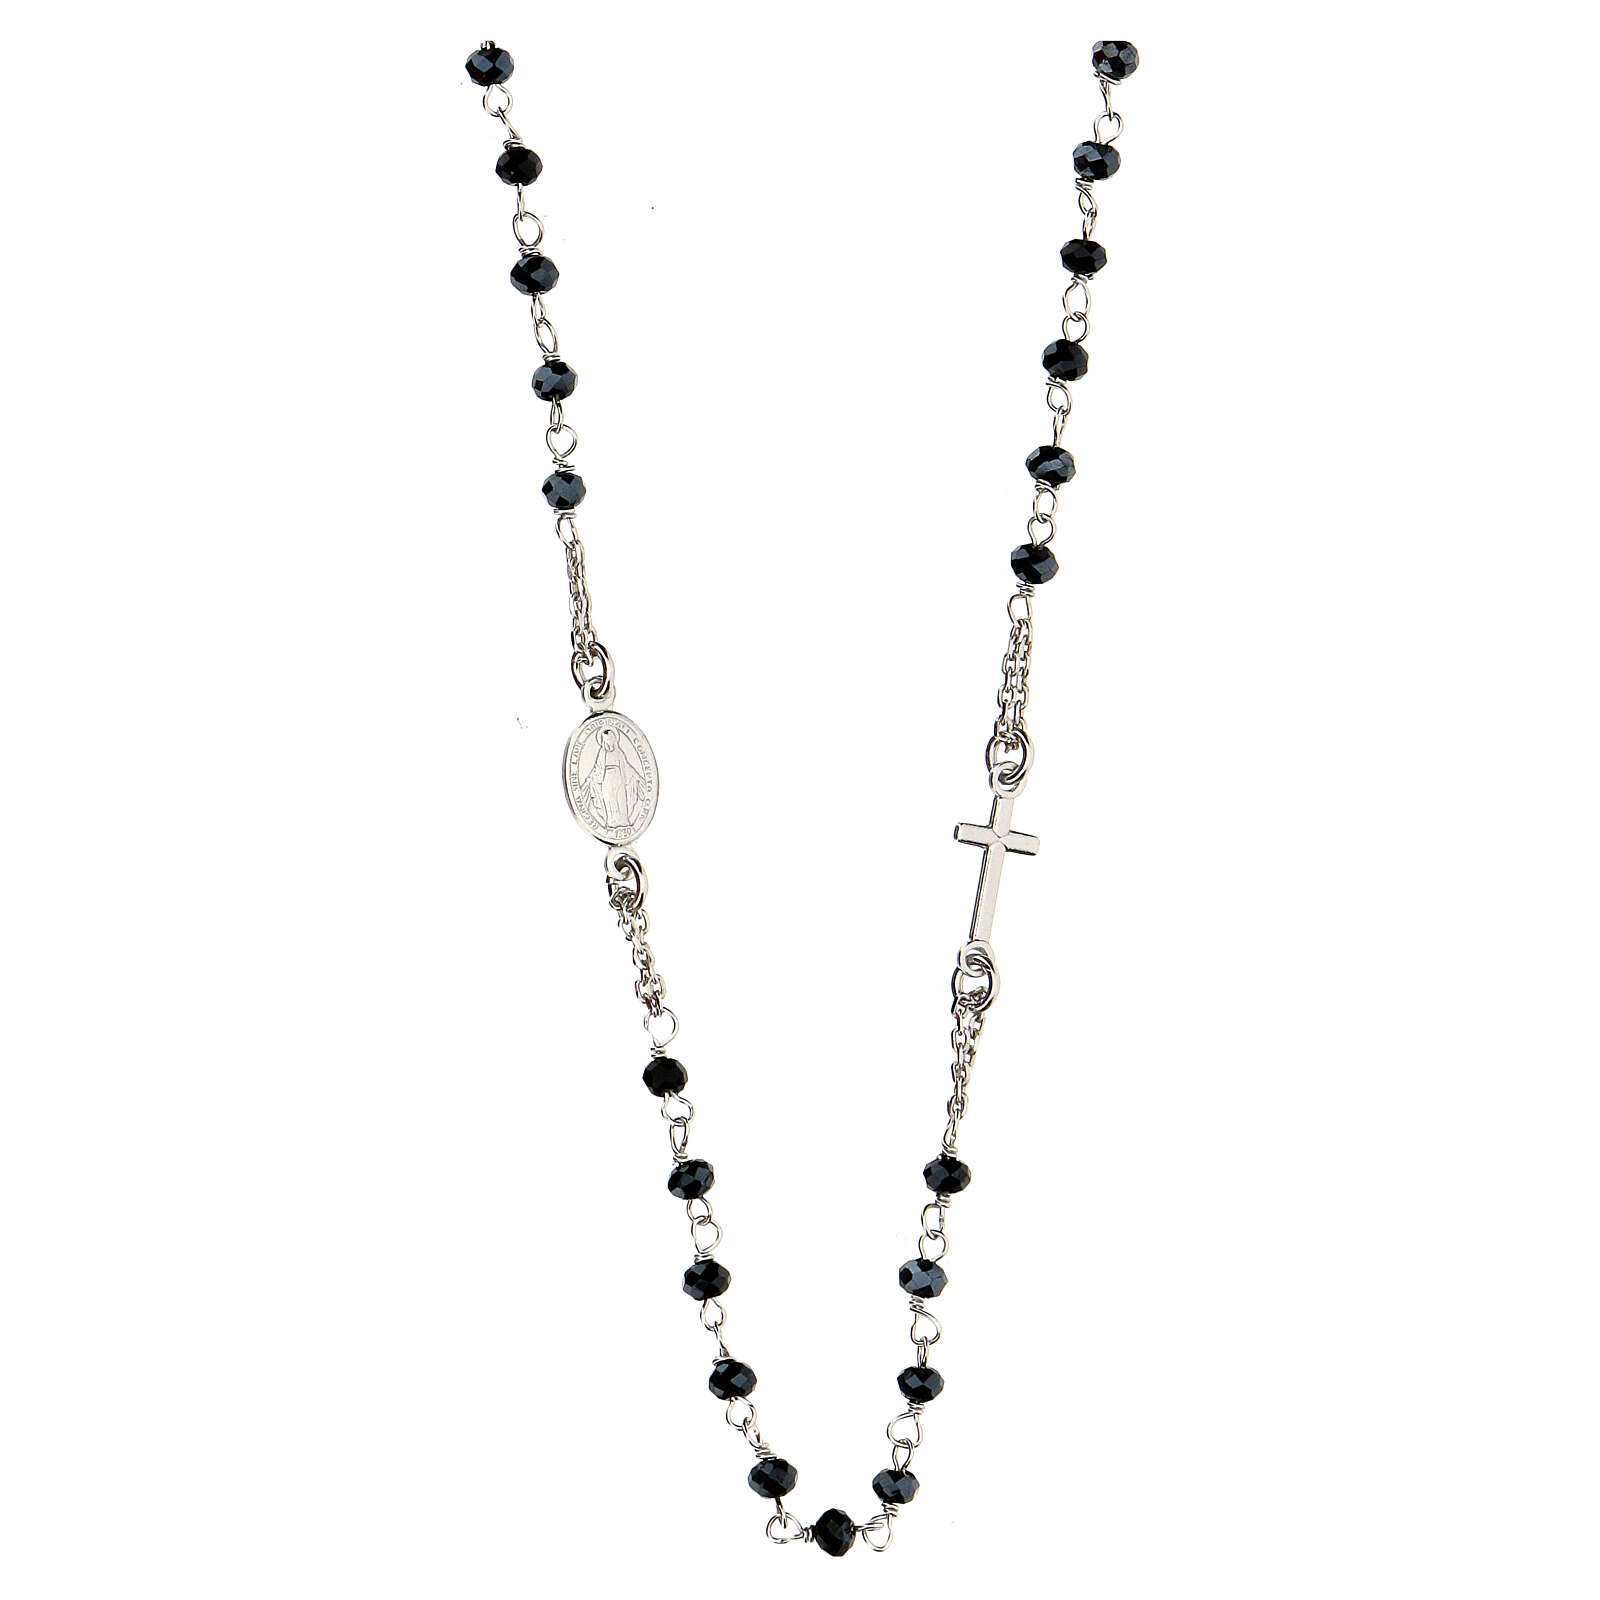 Rosary Necklace AMEN classic Pavè black crystals, silver 925 Rhodium 4